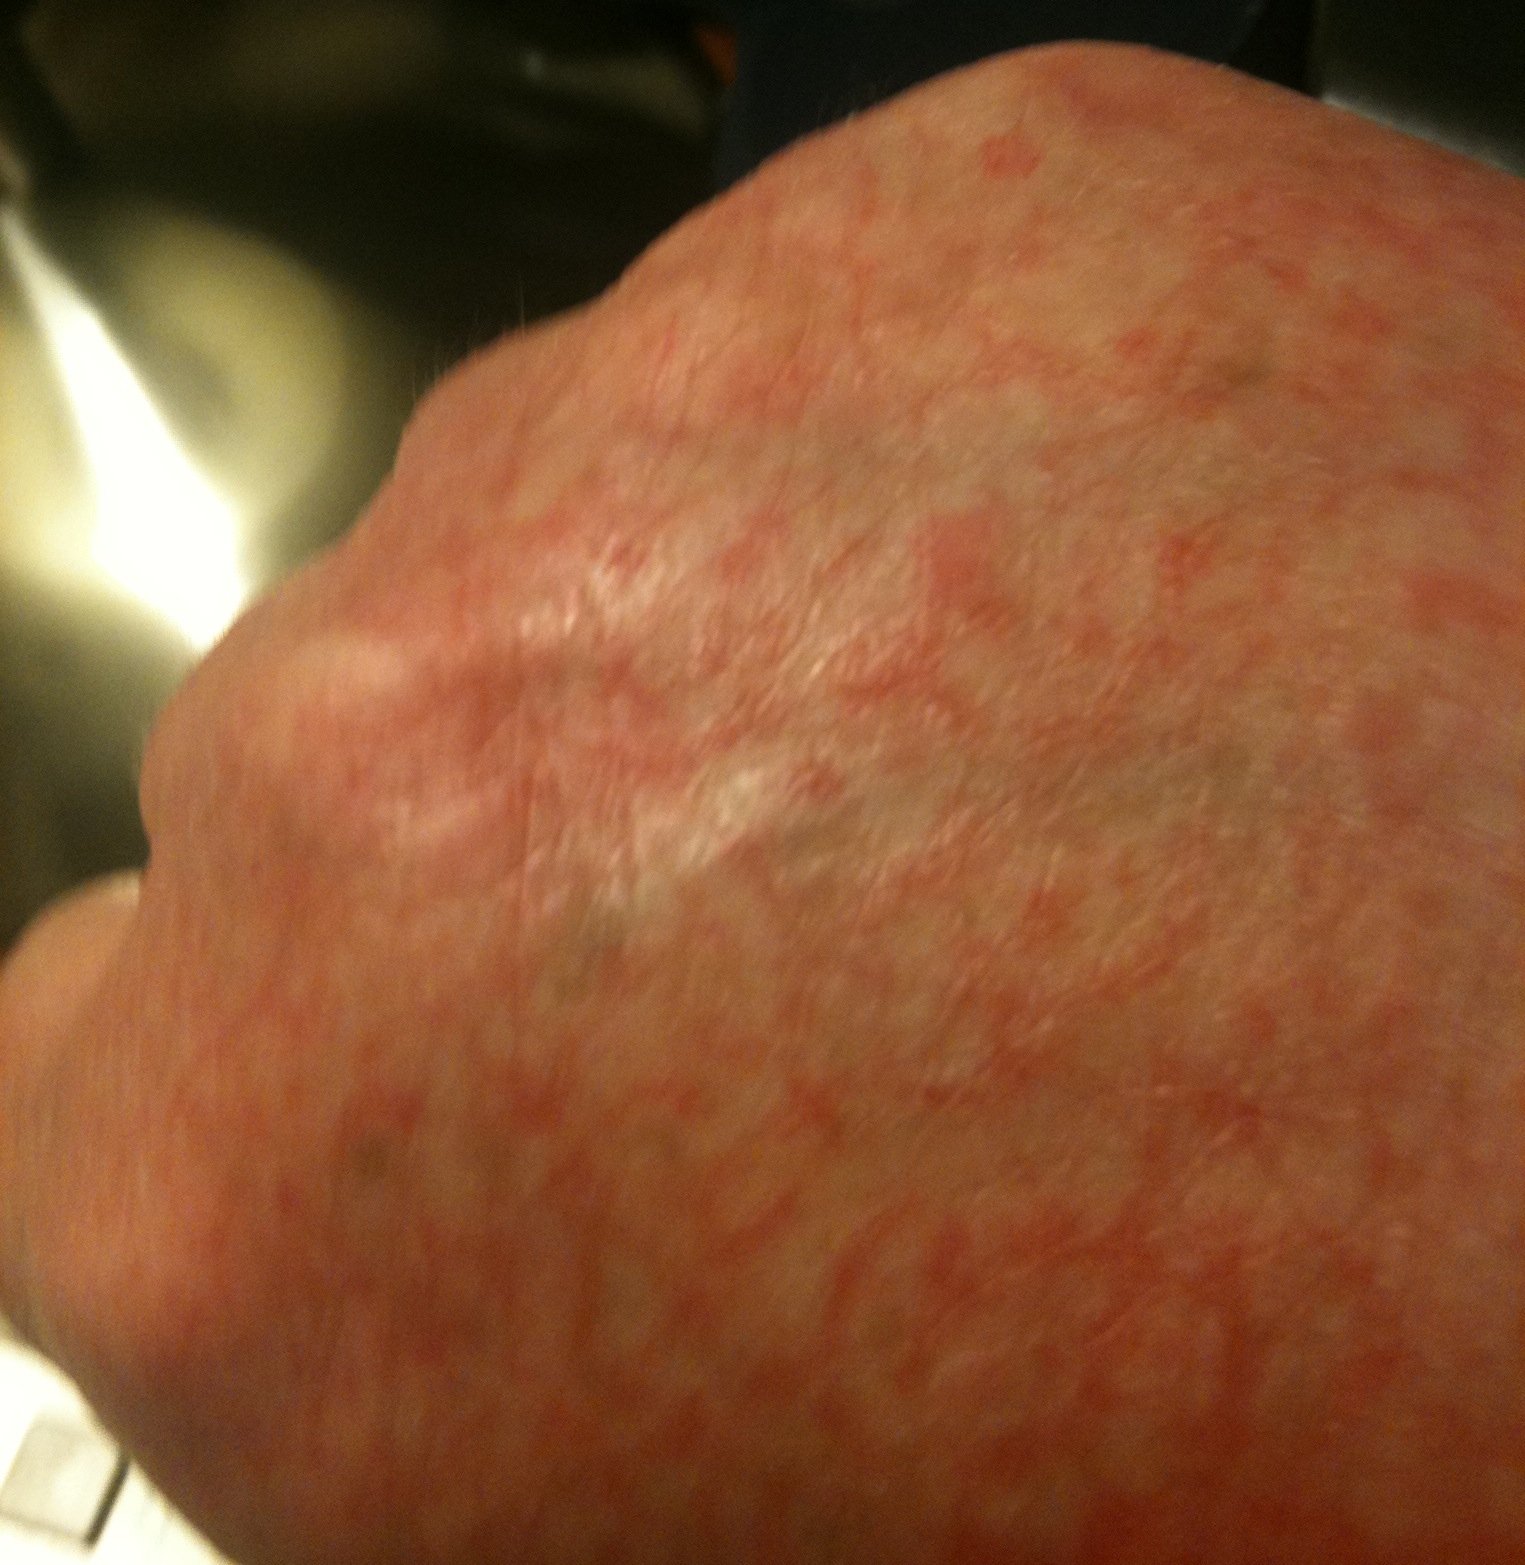 Pictures of Hives On Hands - #rock-cafe